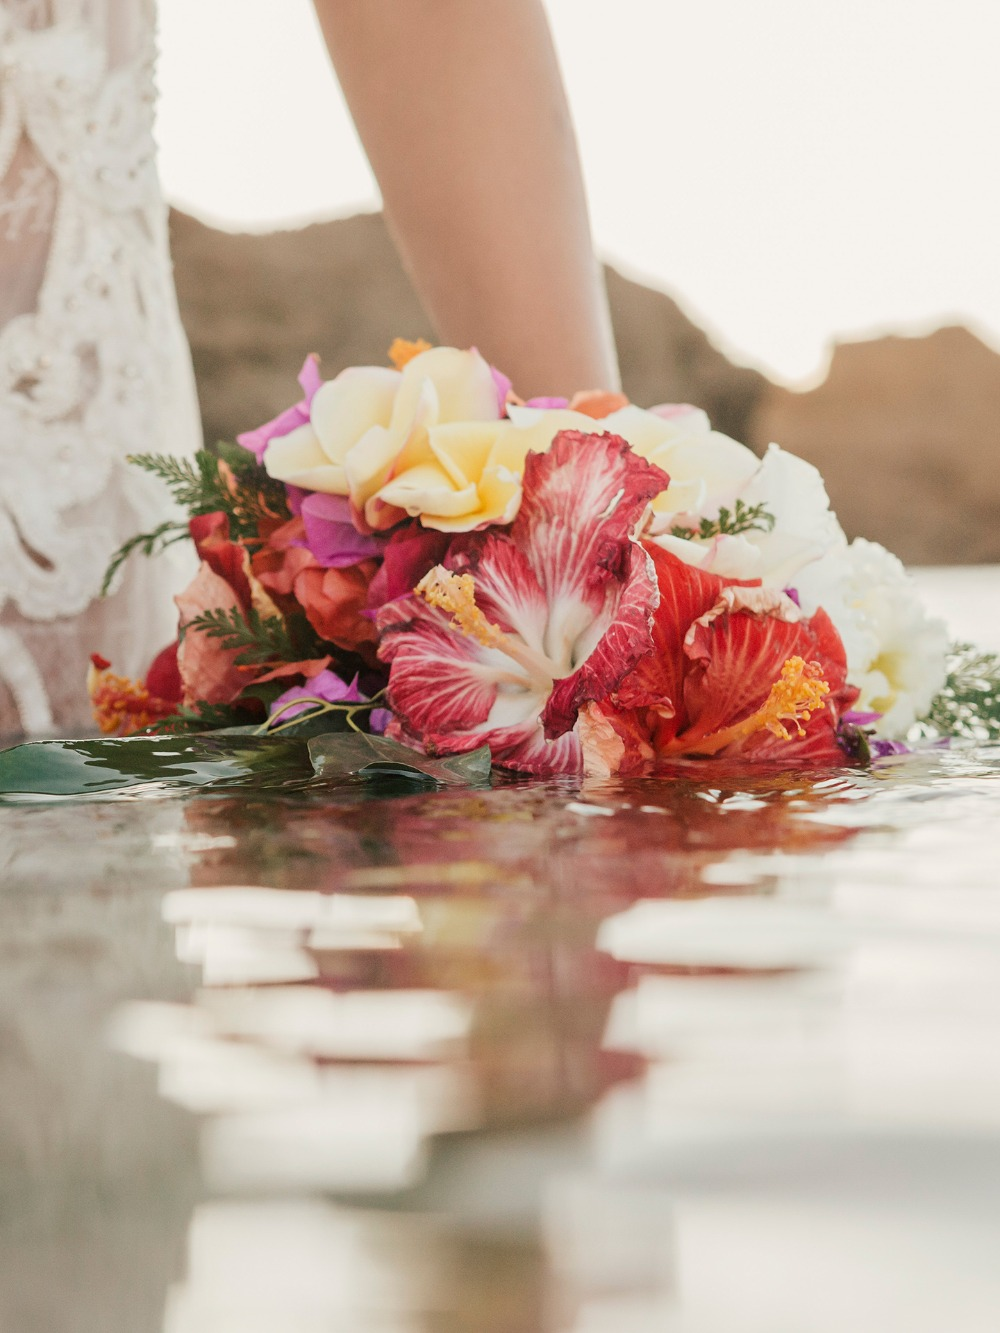 Tropical Boho Wedding Photoshoot in Hawaii - Romantic Hawaiian Wedding